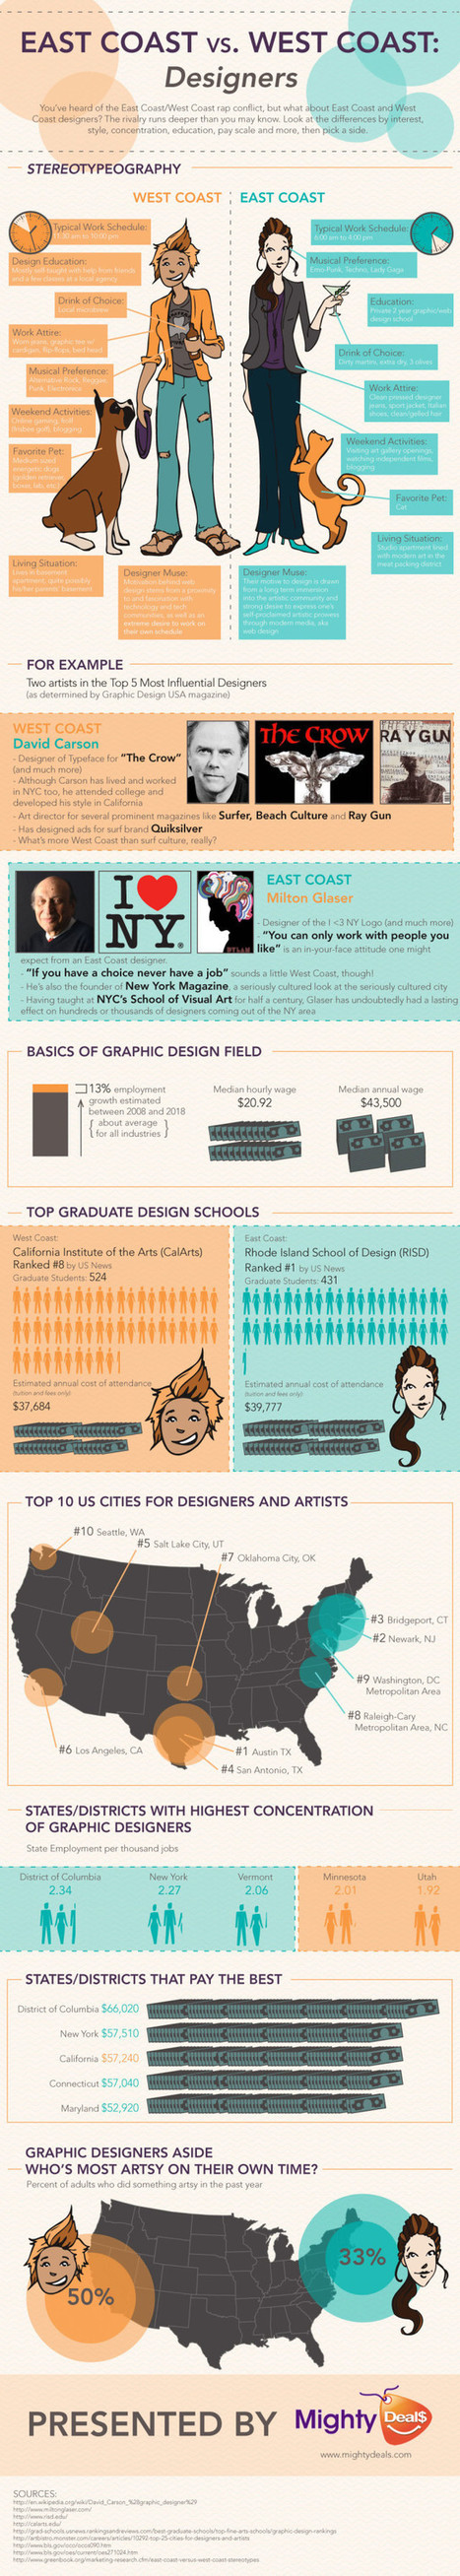 East Coast Vs. West Coast Designers [Infographic] | The Best Infographics | Scoop.it